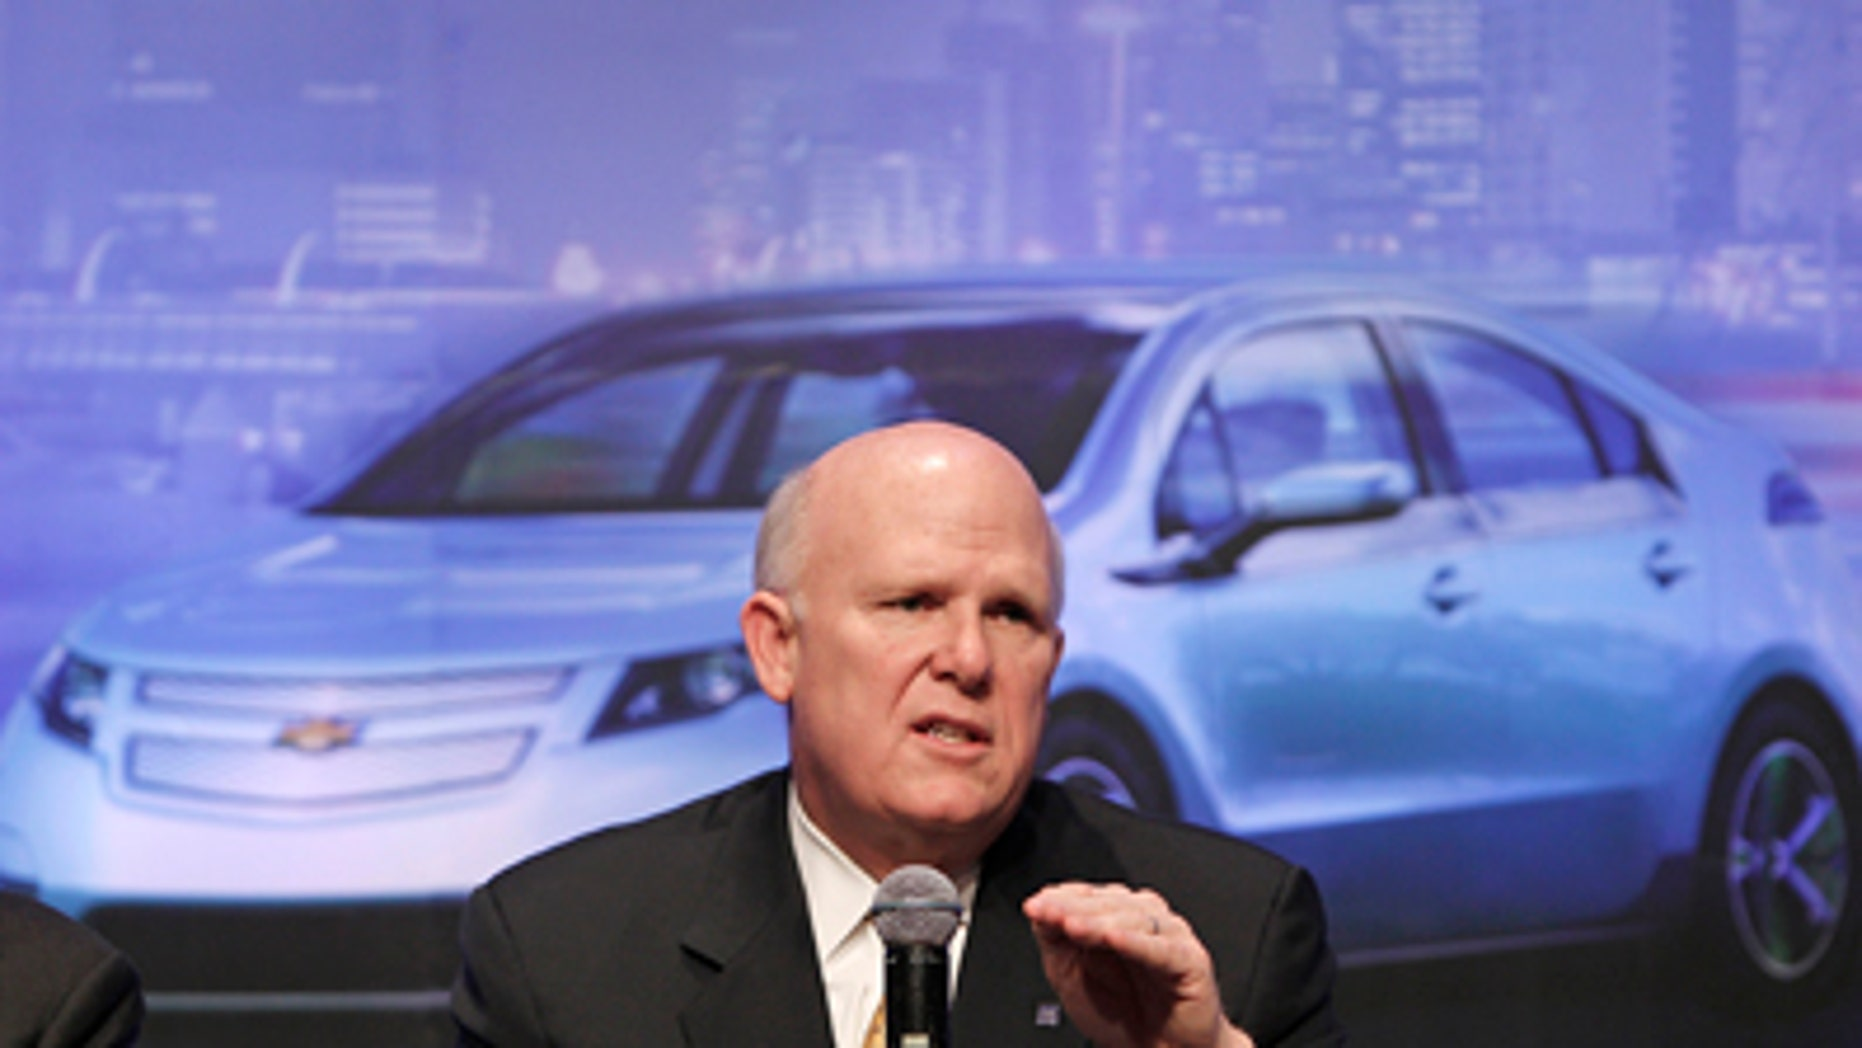 General Motor Co. Chief Executive Daniel Akerson gestures as he speaks during a media conference in Beijing Tuesday, Feb. 15, 2011. China will play a much bigger role in GM's plans as it moves to capitalize further on the world's largest auto market, Akerson said Tuesday. (AP Photo/Andy Wong)